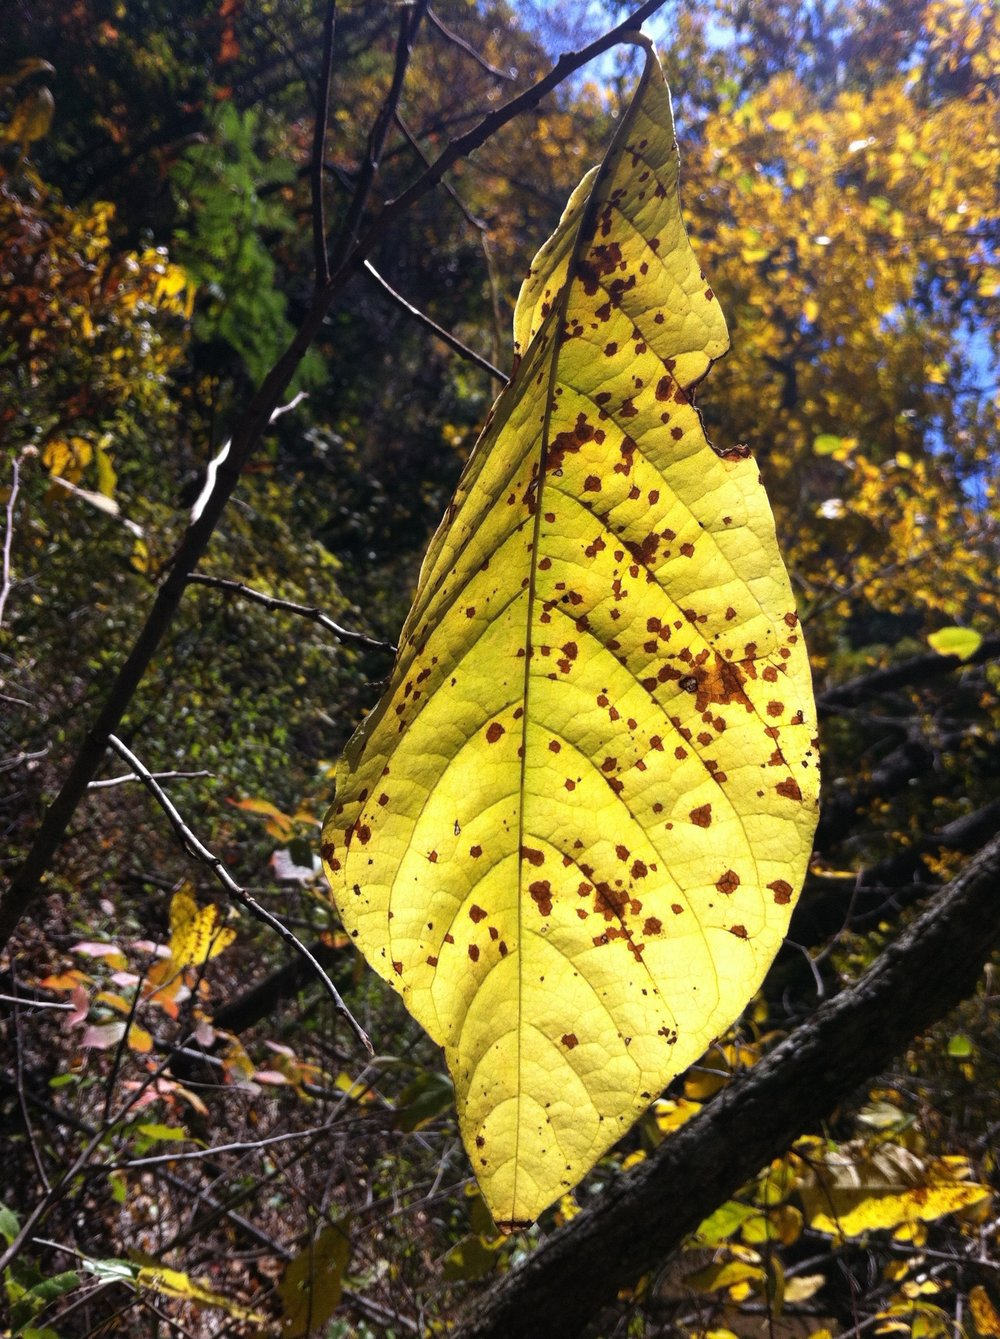 I picked the name Pawpaw Patch Productions for my business because there is so much I enjoy about these trees including the large lemon-yellow leaves each autumn. I also like alliteration.